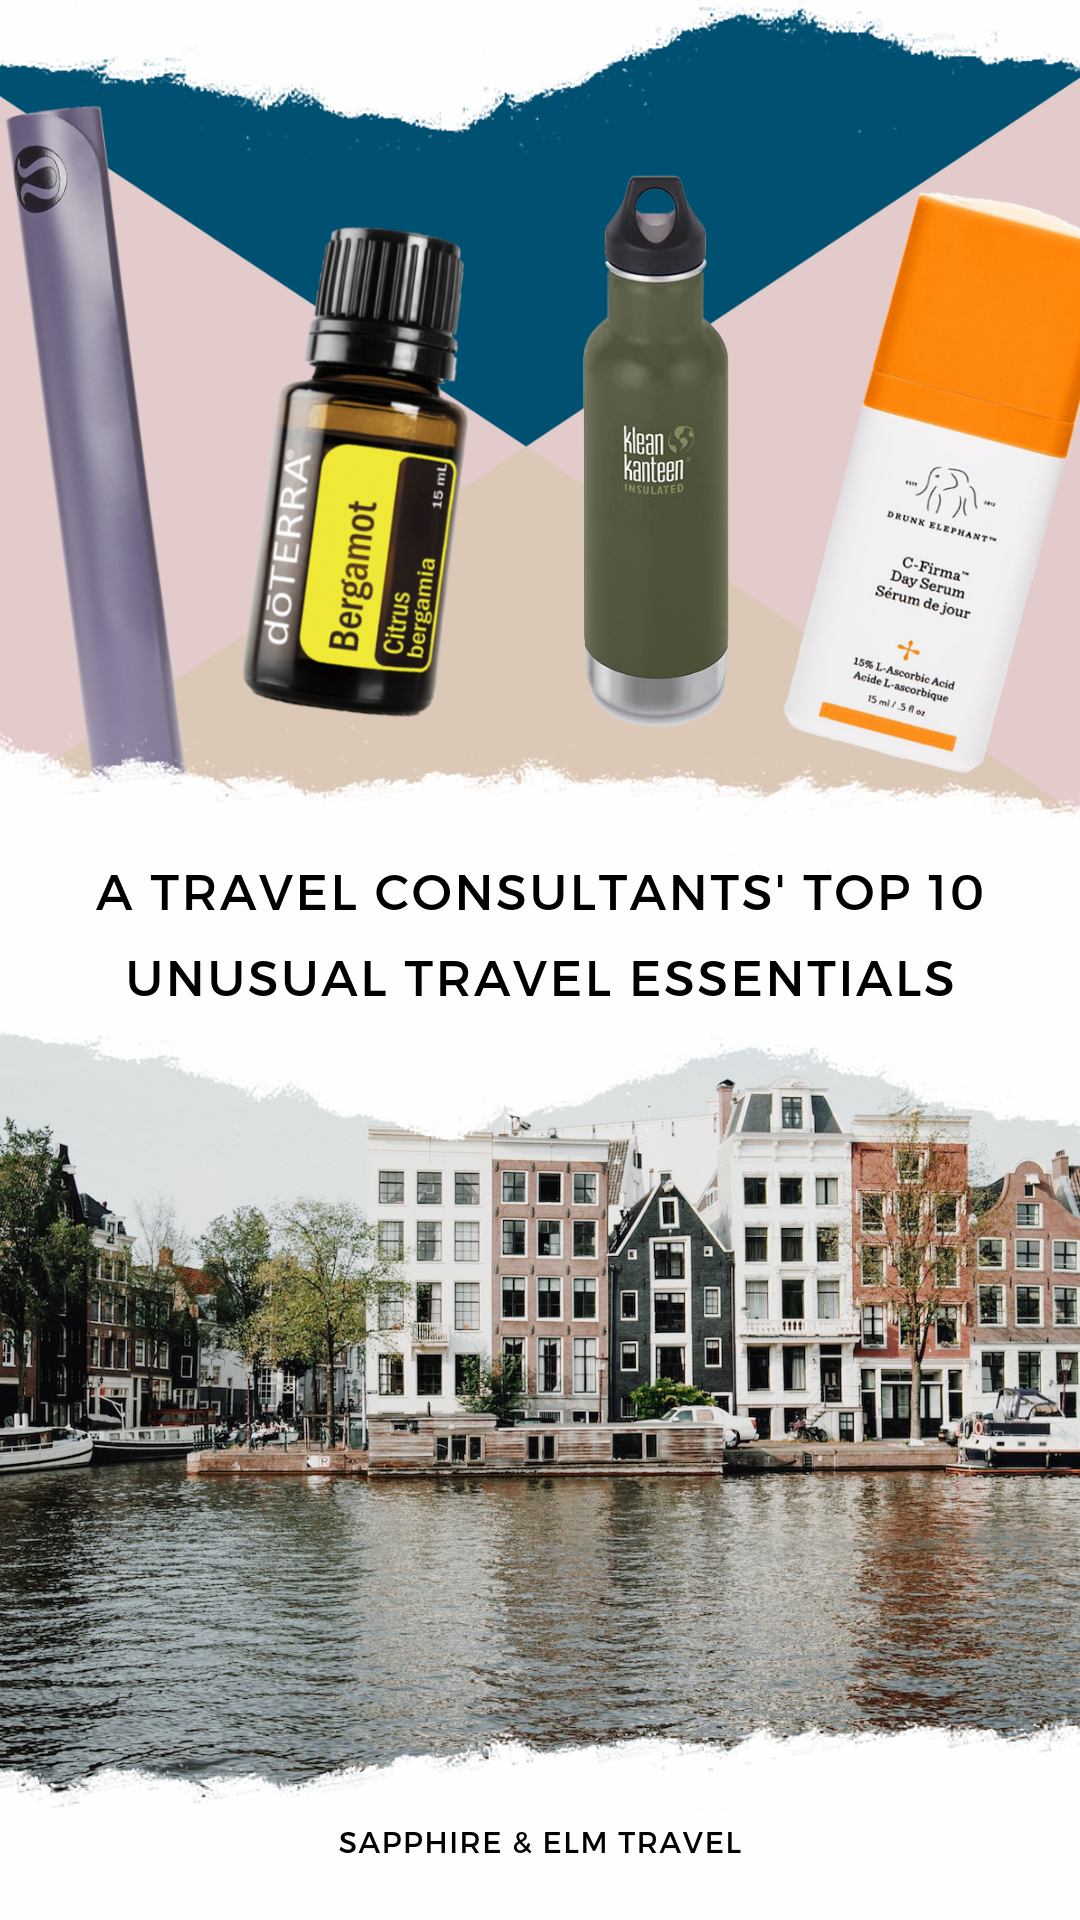 Travel Agents' Top 10 Unusual Travel Essentials | Sapphire & Elm Travel